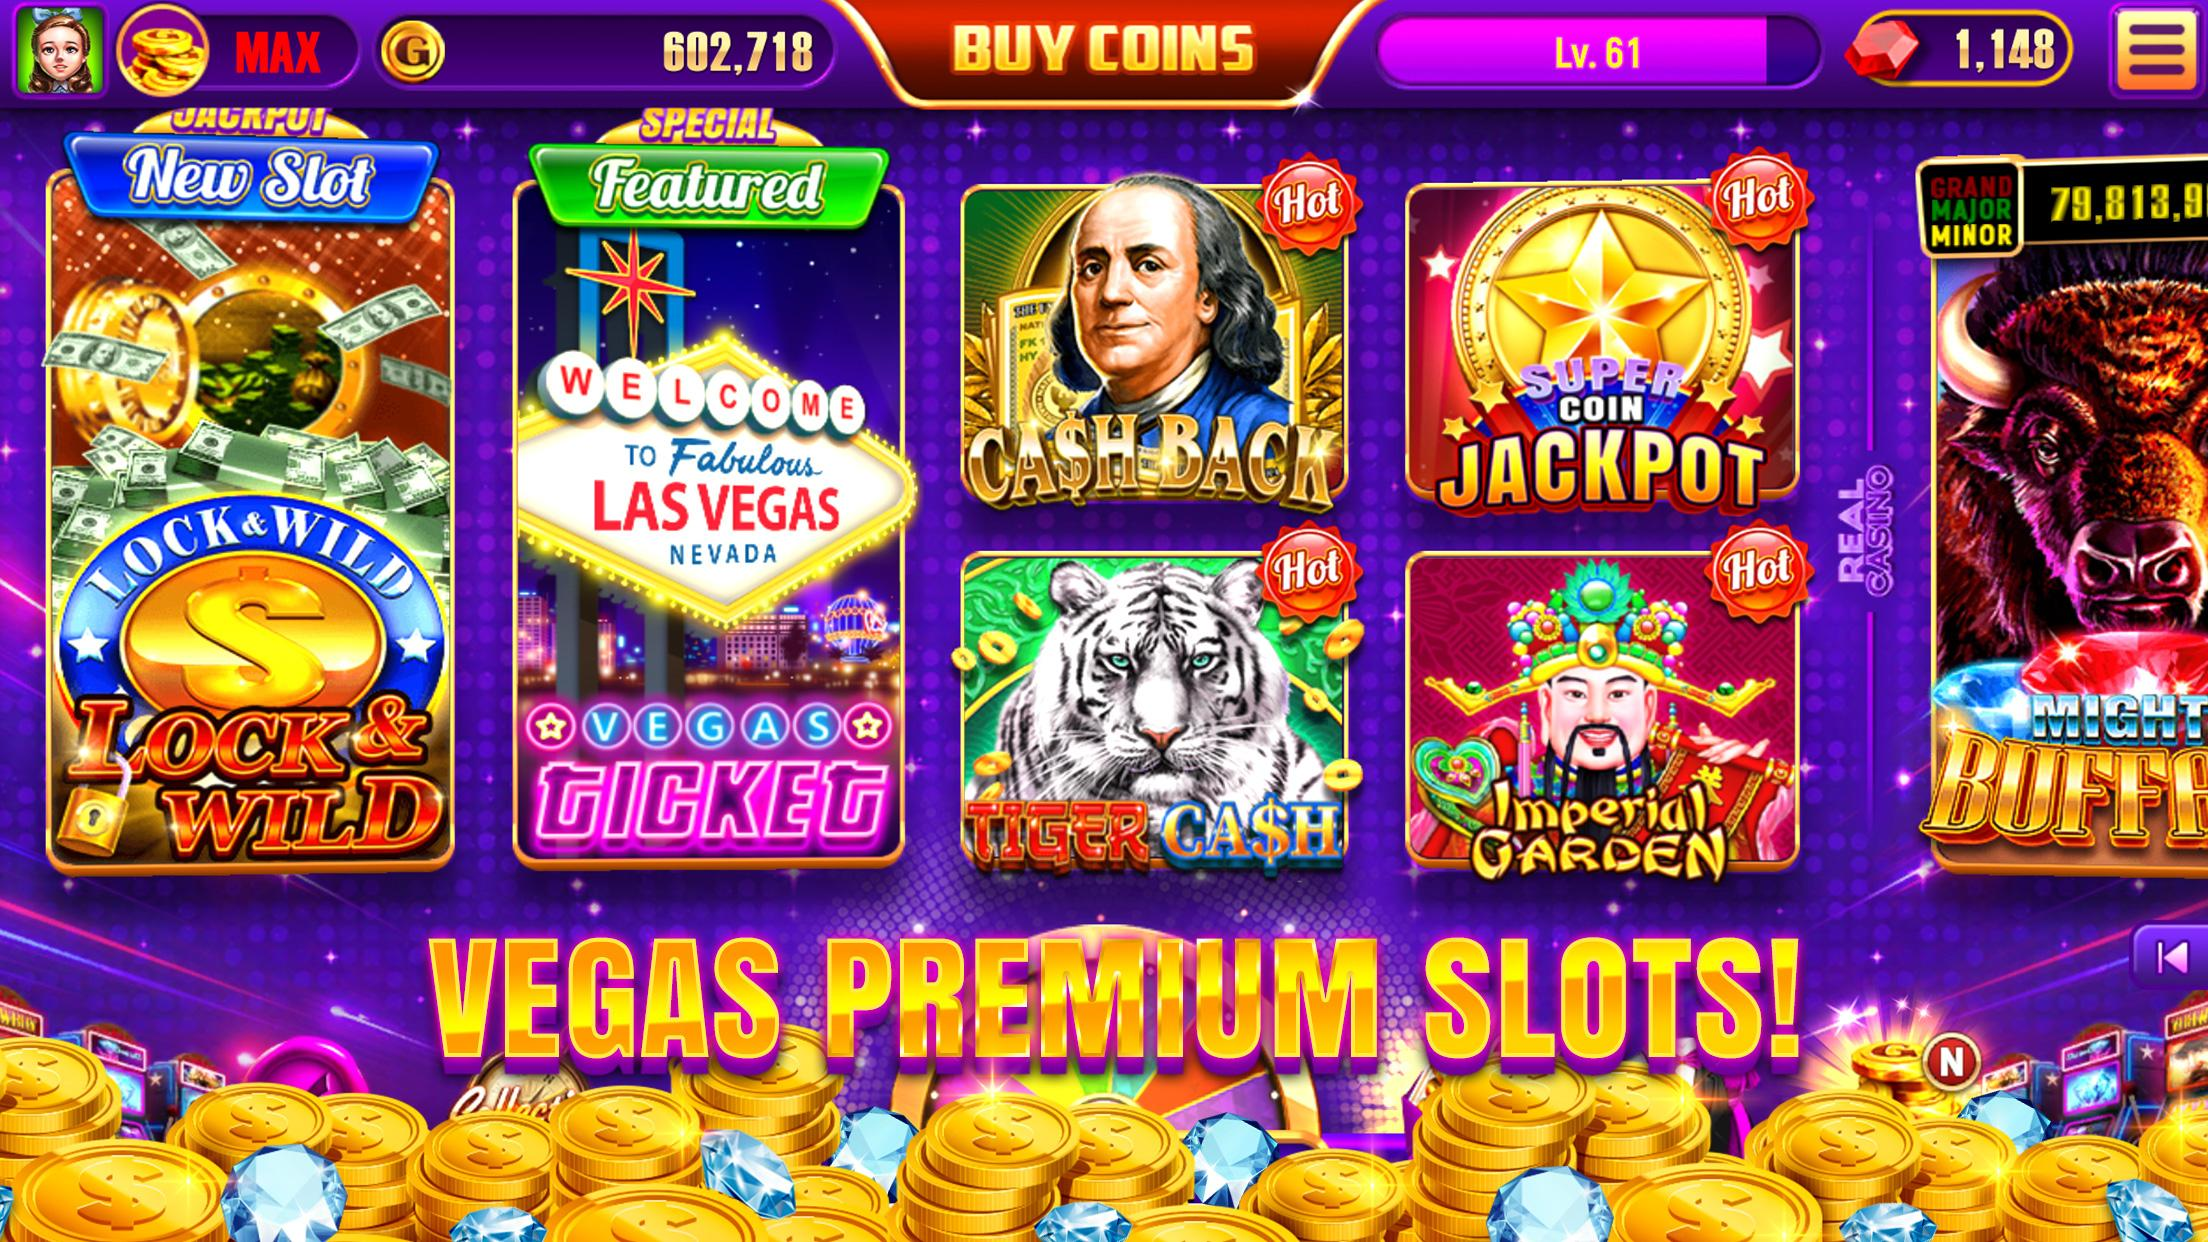 Real Casino - Free Vegas Casino Slot Machines 4.0.824 Screenshot 5